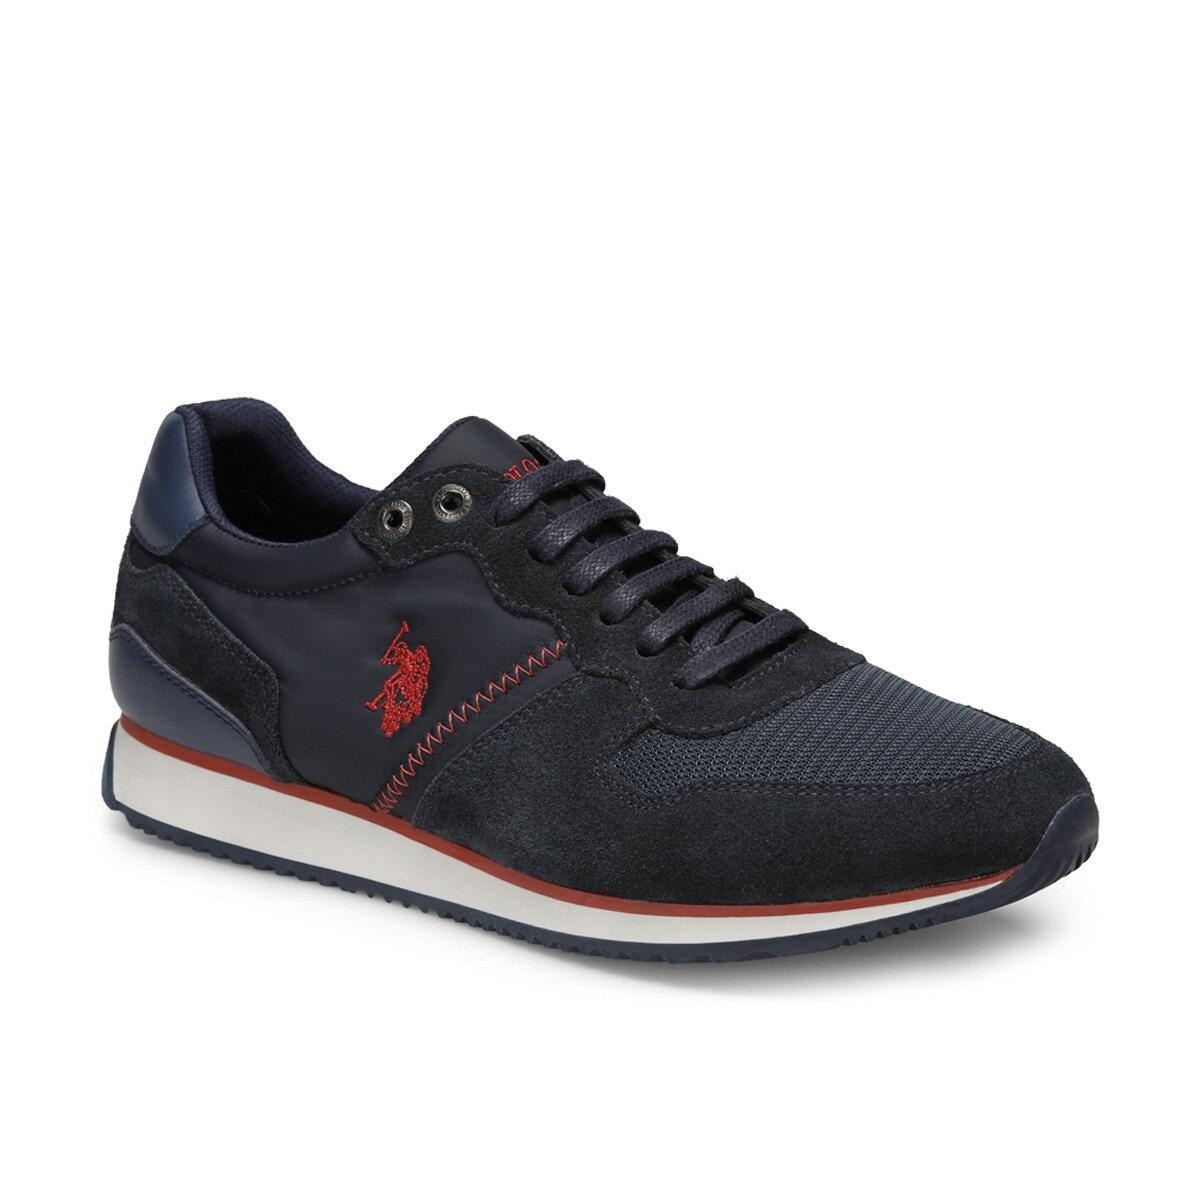 FLO MAC Navy Blue Men 'S Sports Shoes U.S. POLO ASSN.